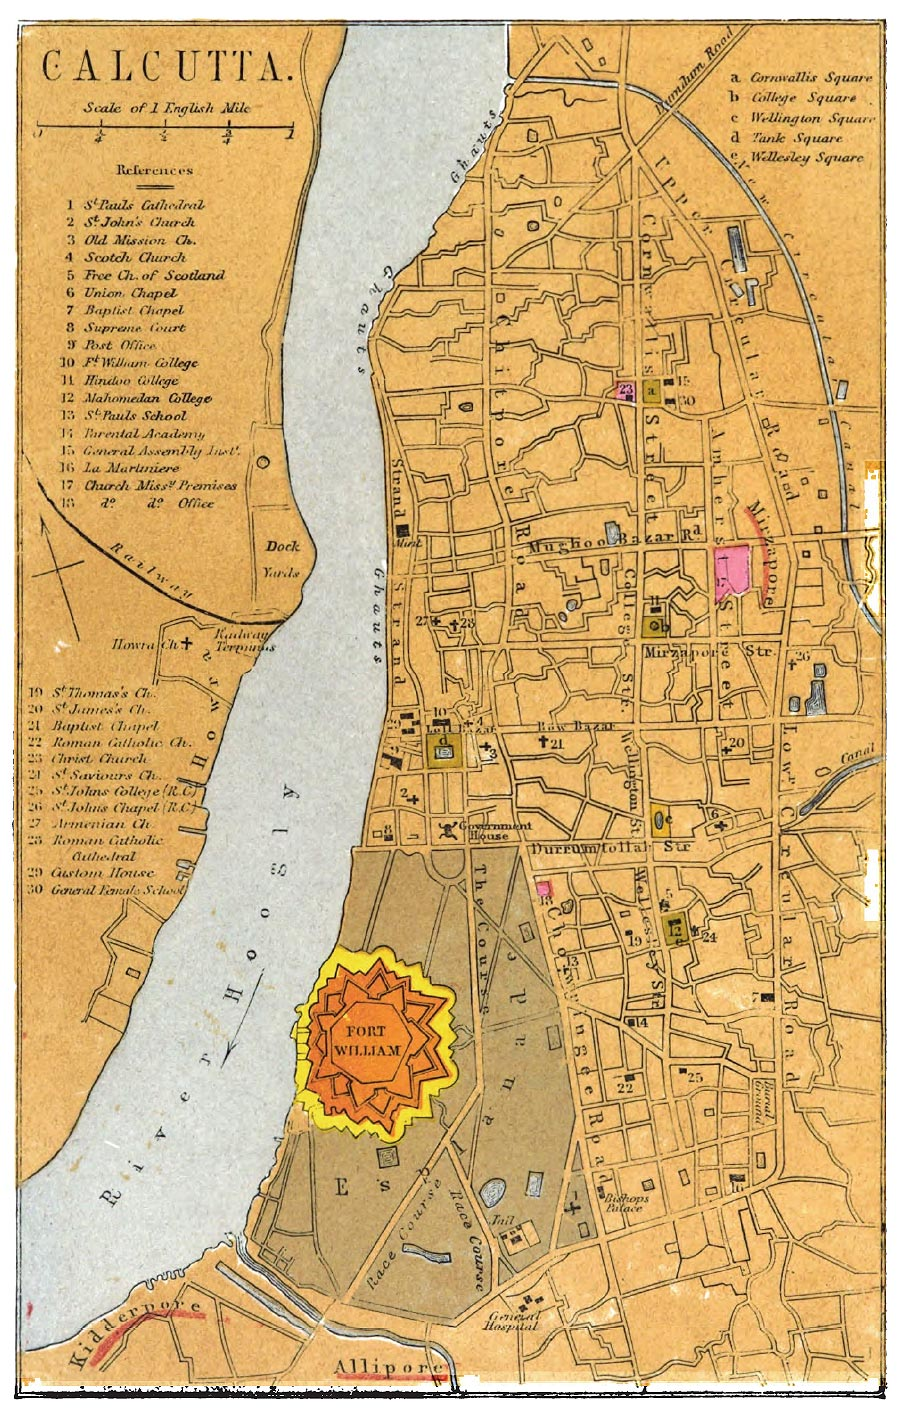 Calcutta Map with references to churches and colleges 1862